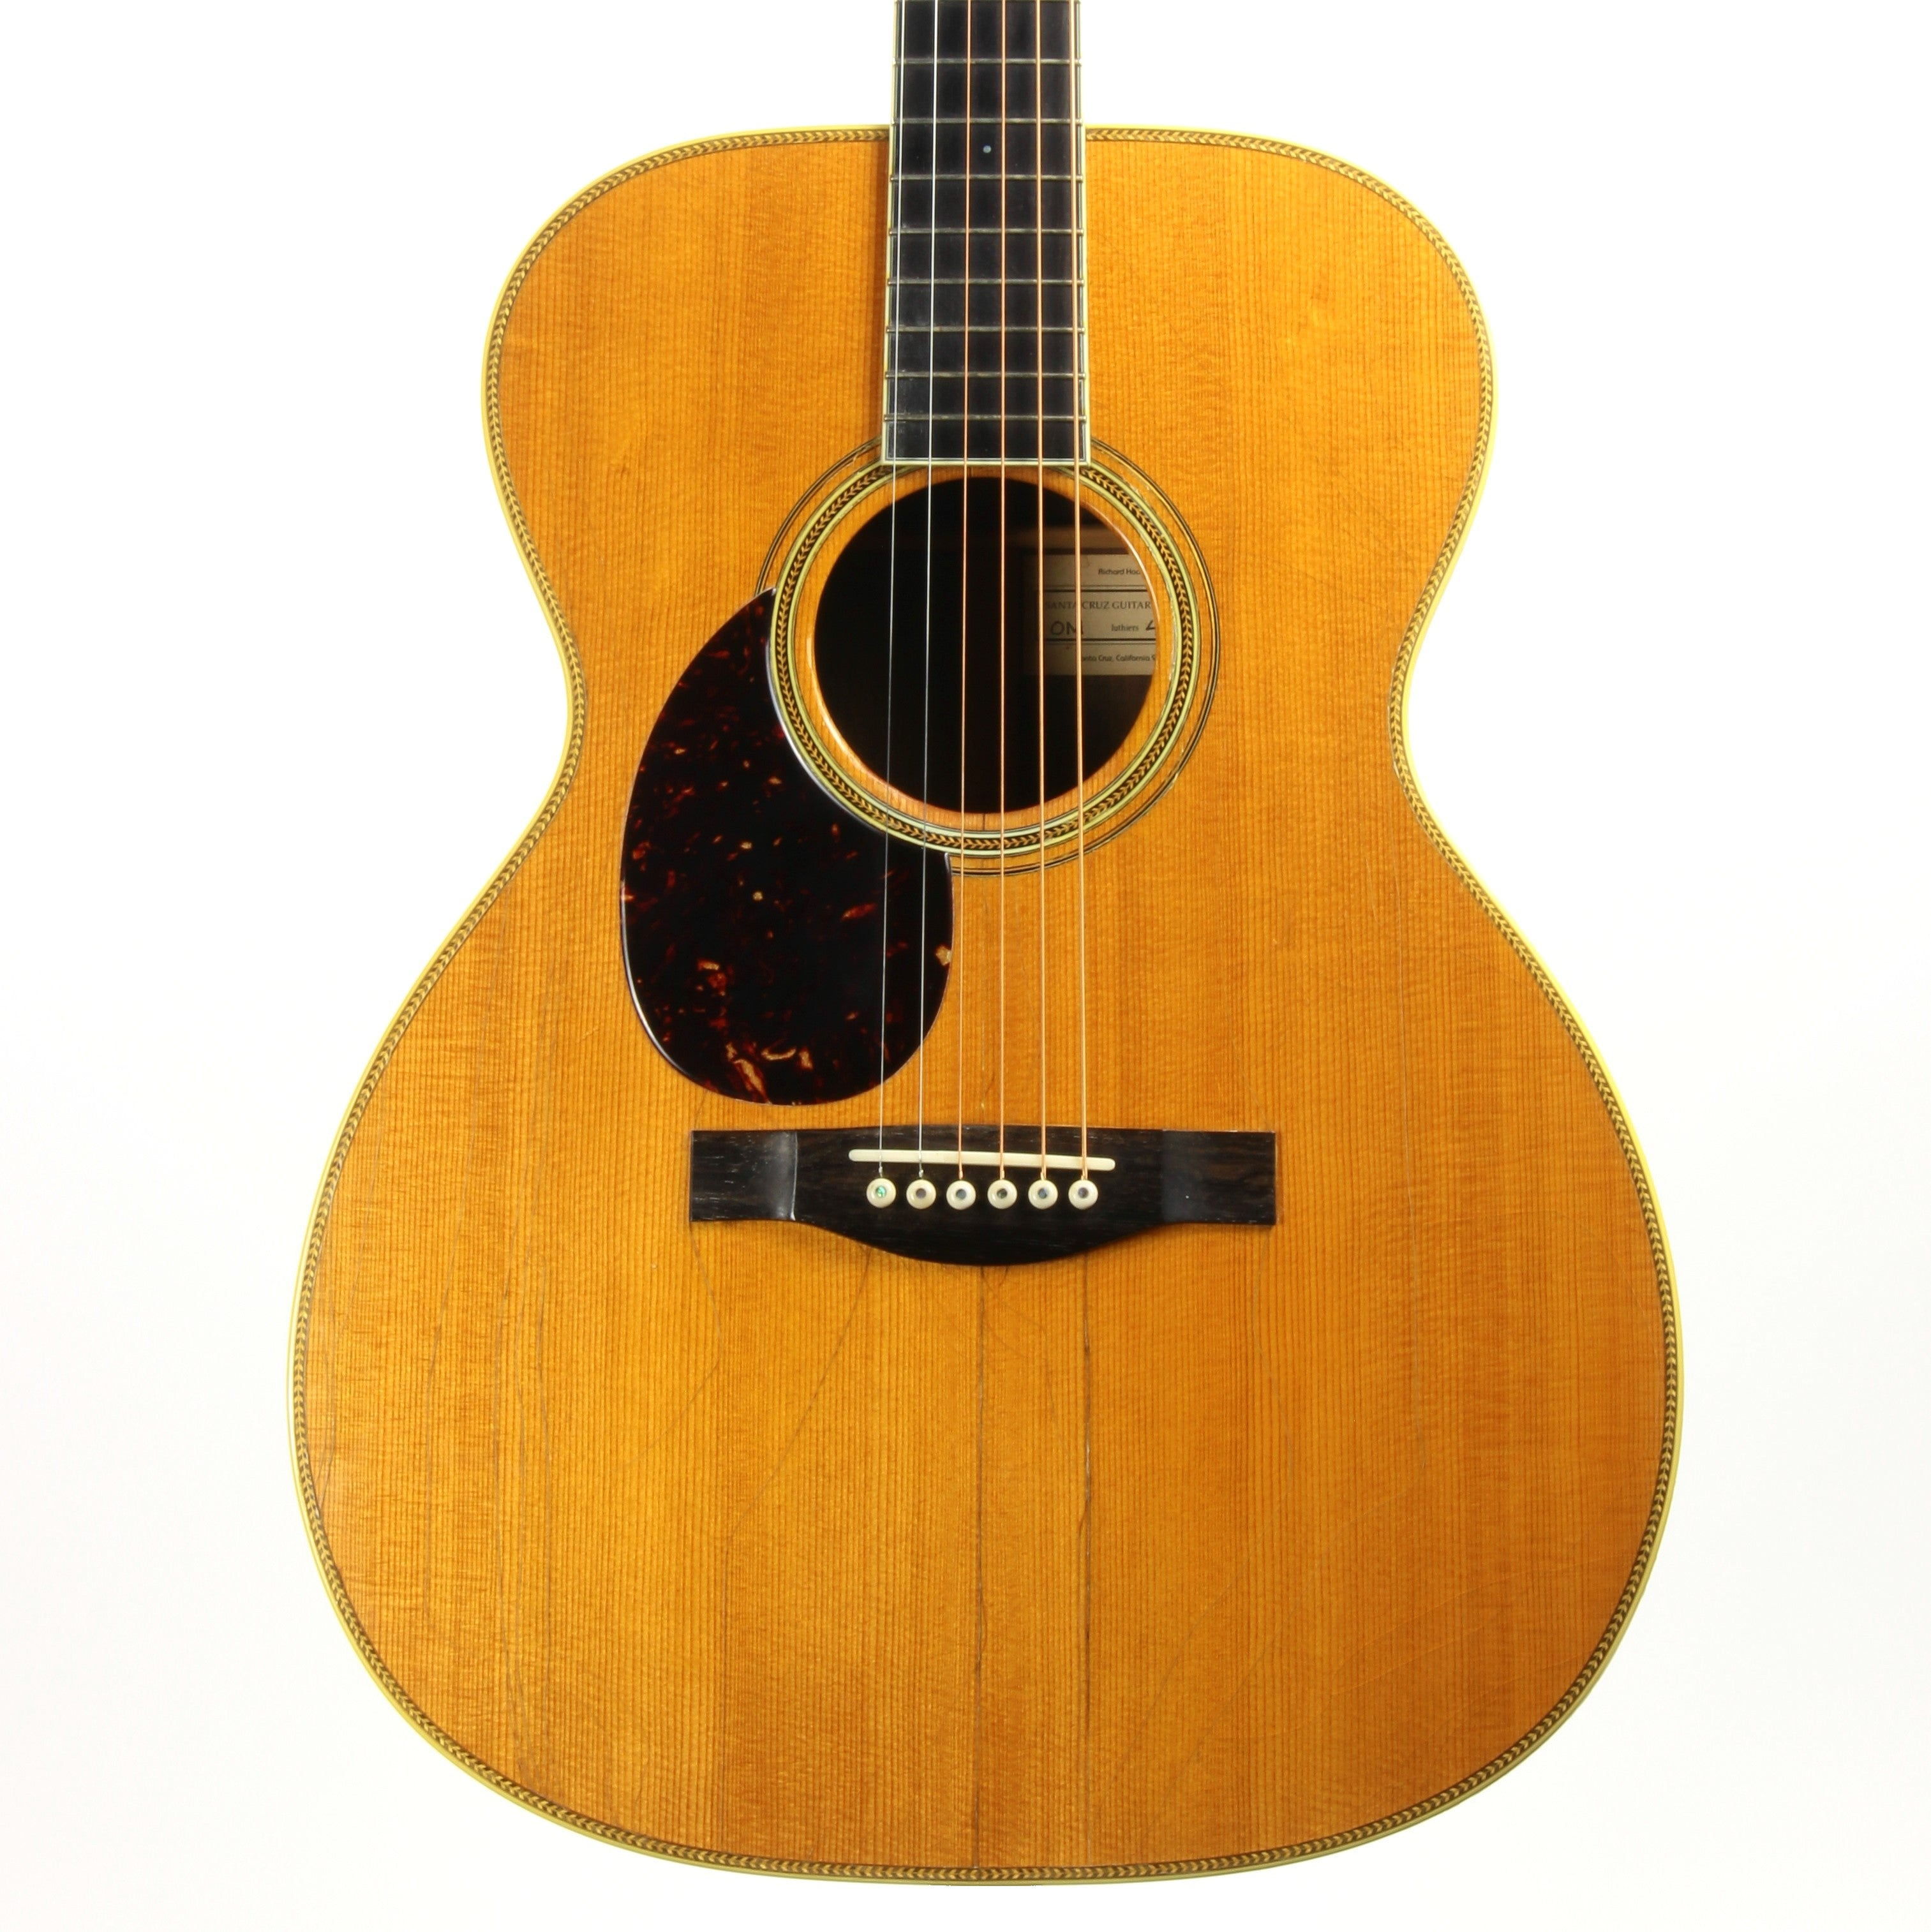 1994 Santa Cruz OM Orchestra Model Left-Handed Acoustic - Player-Grade Lefty